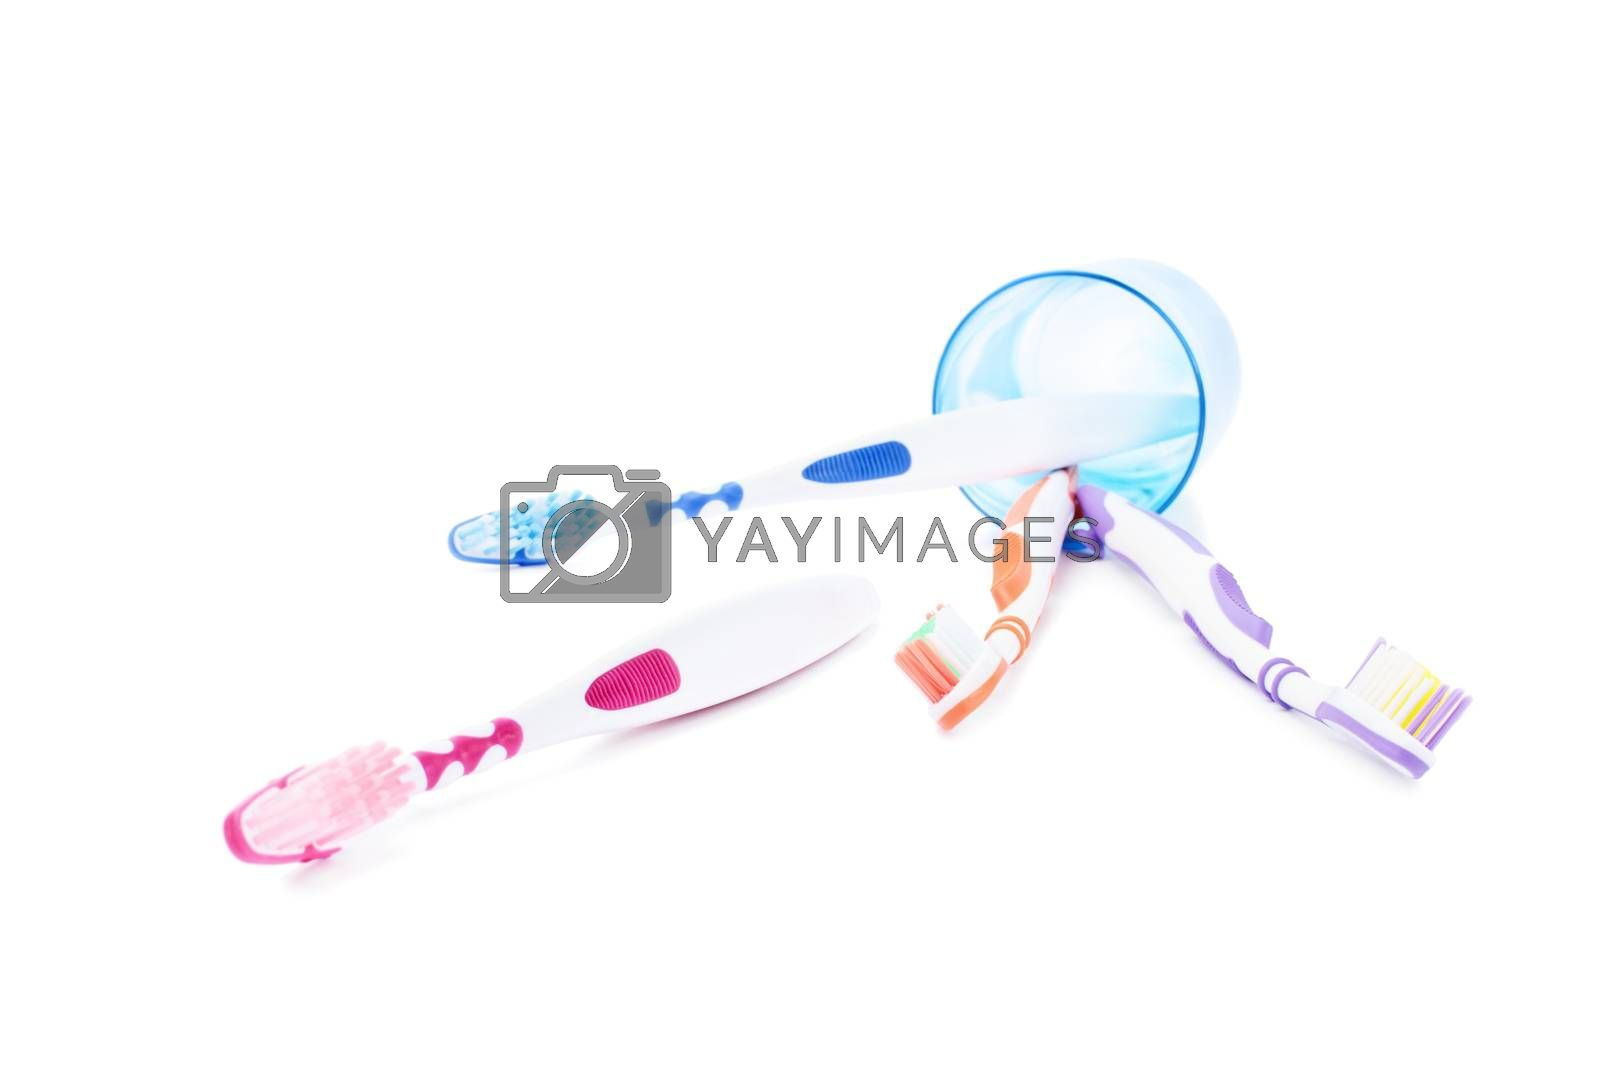 Fallen toothbrush cup holder with scattered toothbrushes, isolated on white background.